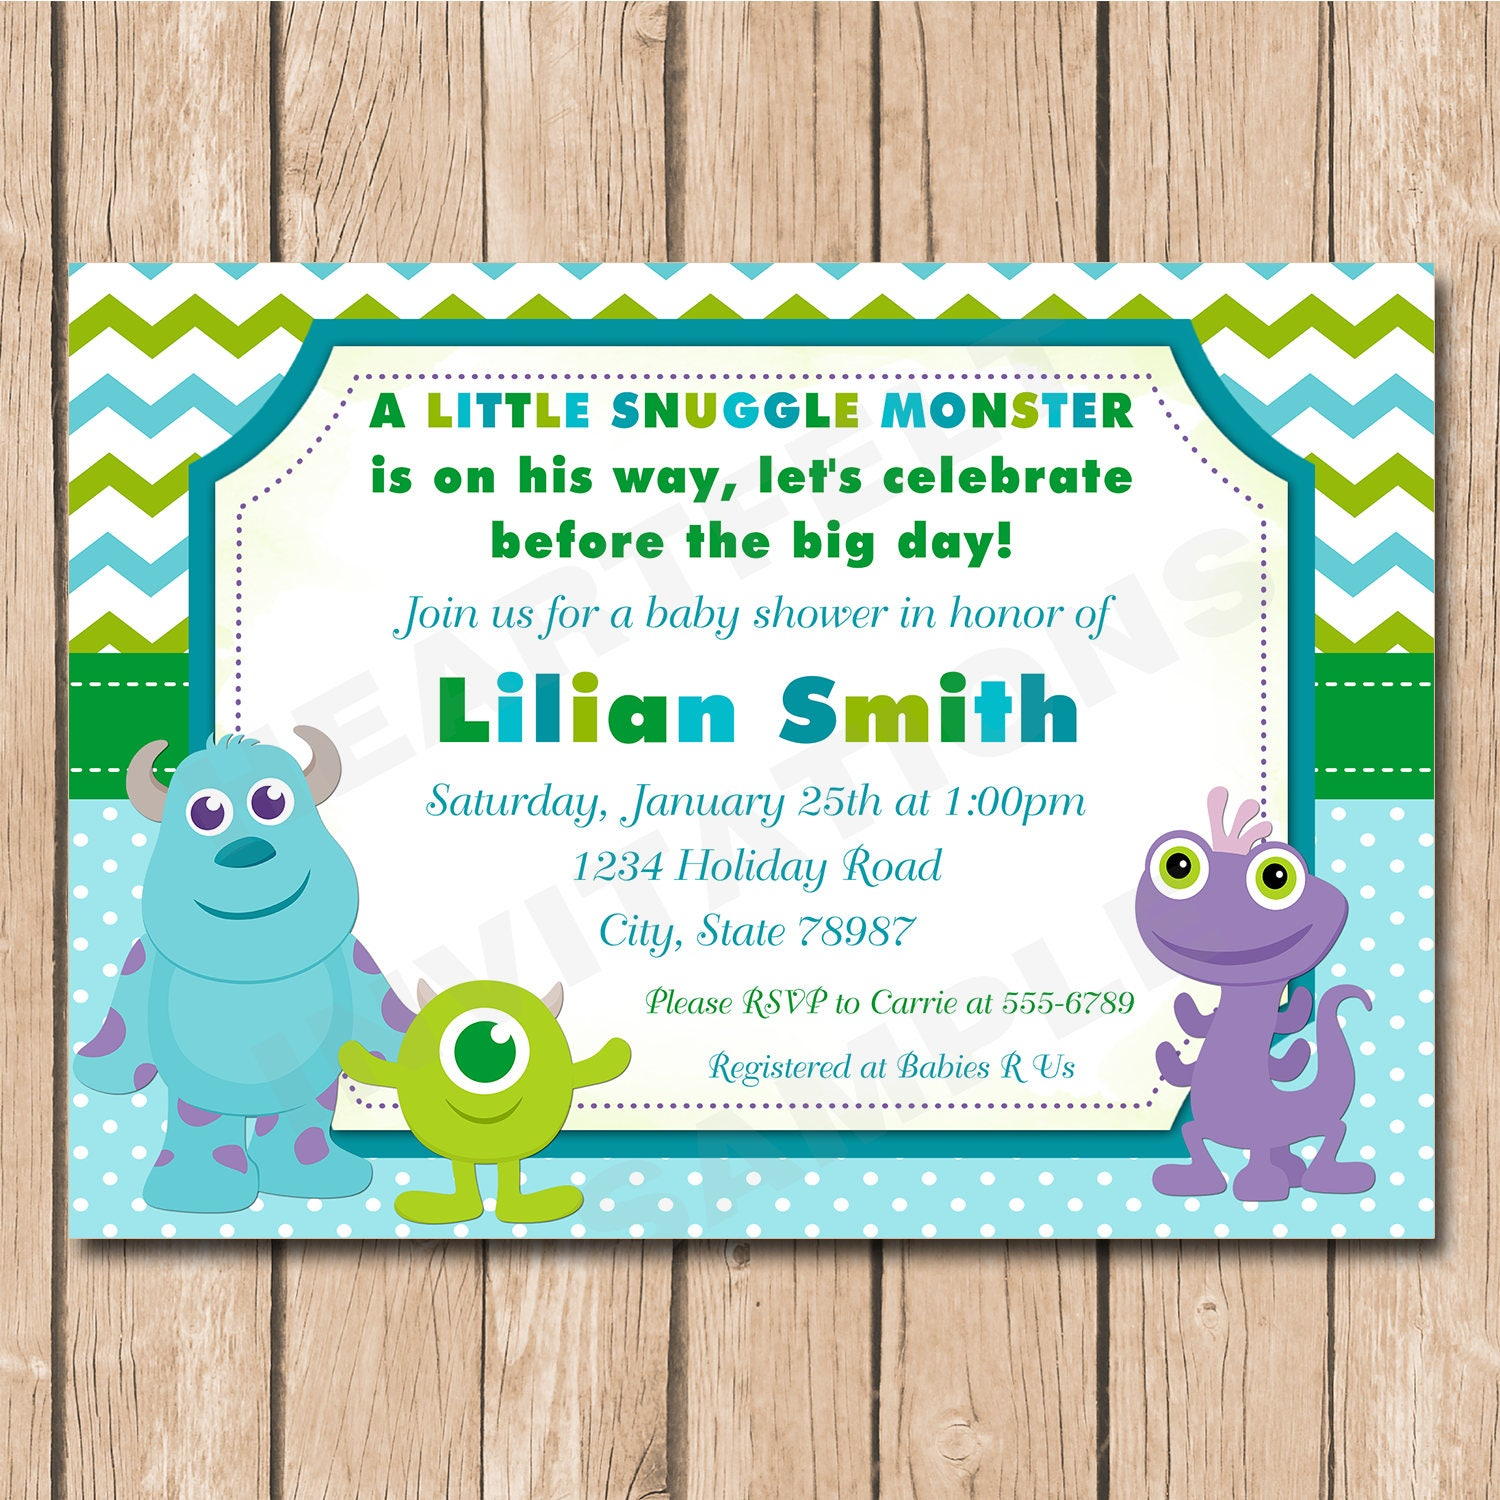 Mini monsters inc baby shower invitation boy or girl zoom filmwisefo